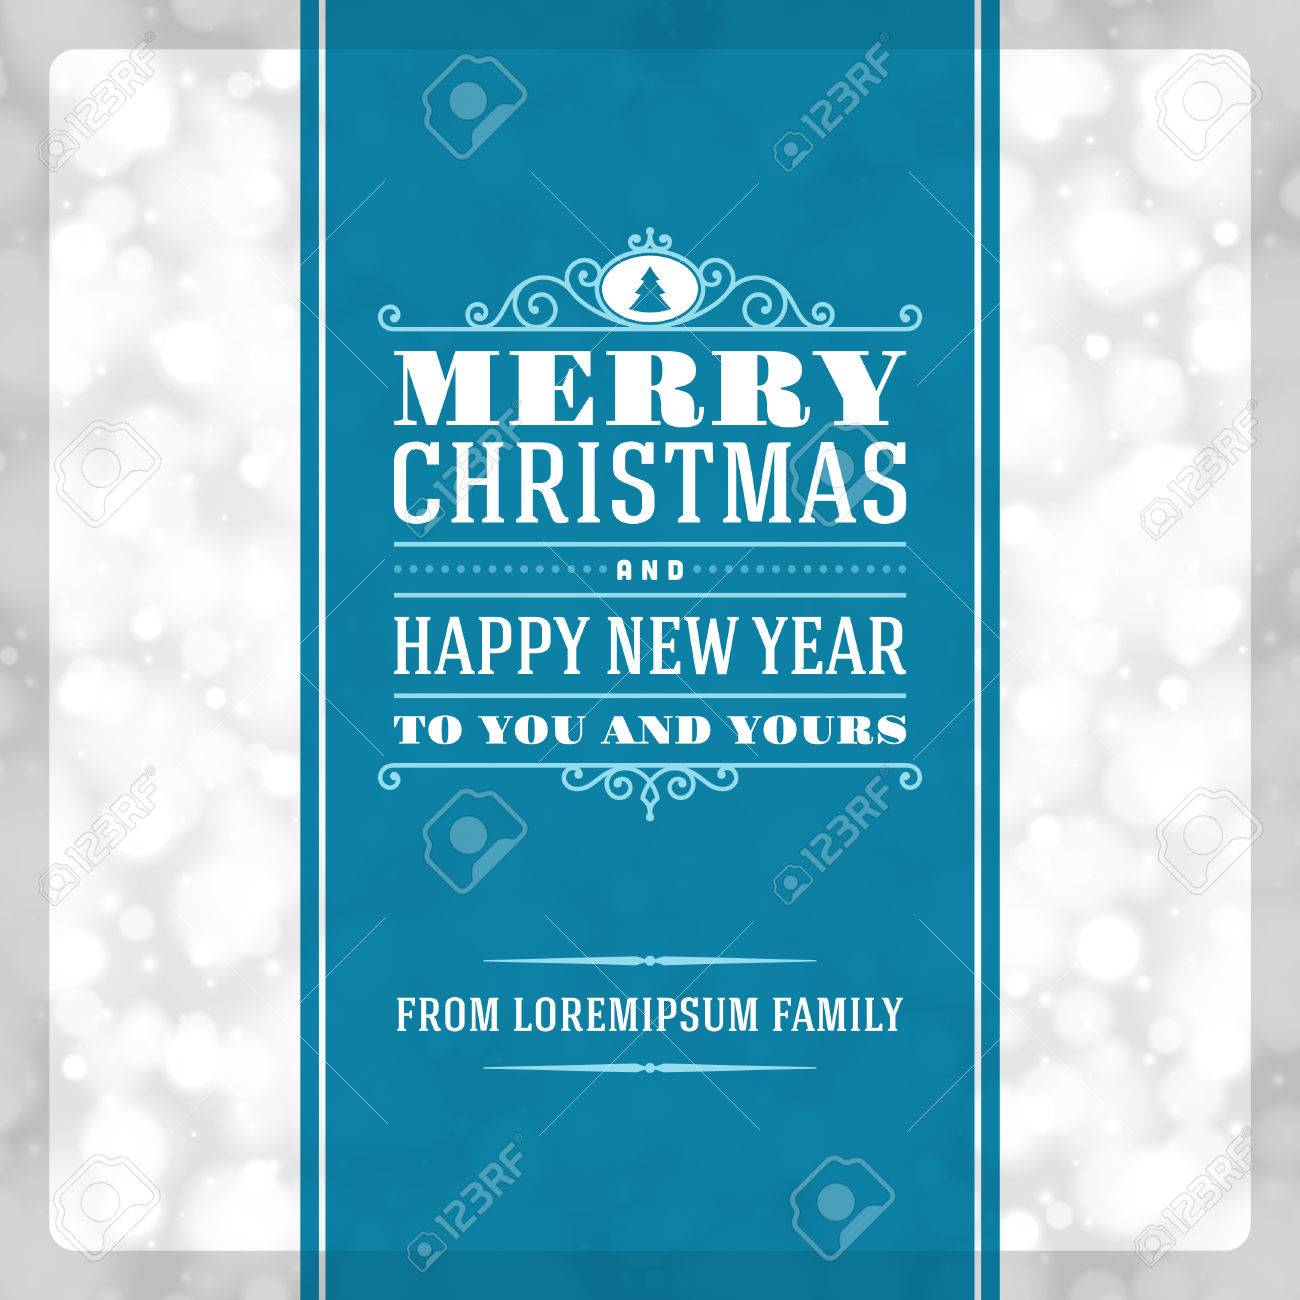 Christmas invitation card ornament decoration background  Vector illustration Eps 10  Happy new year message Stock Vector - 23262376